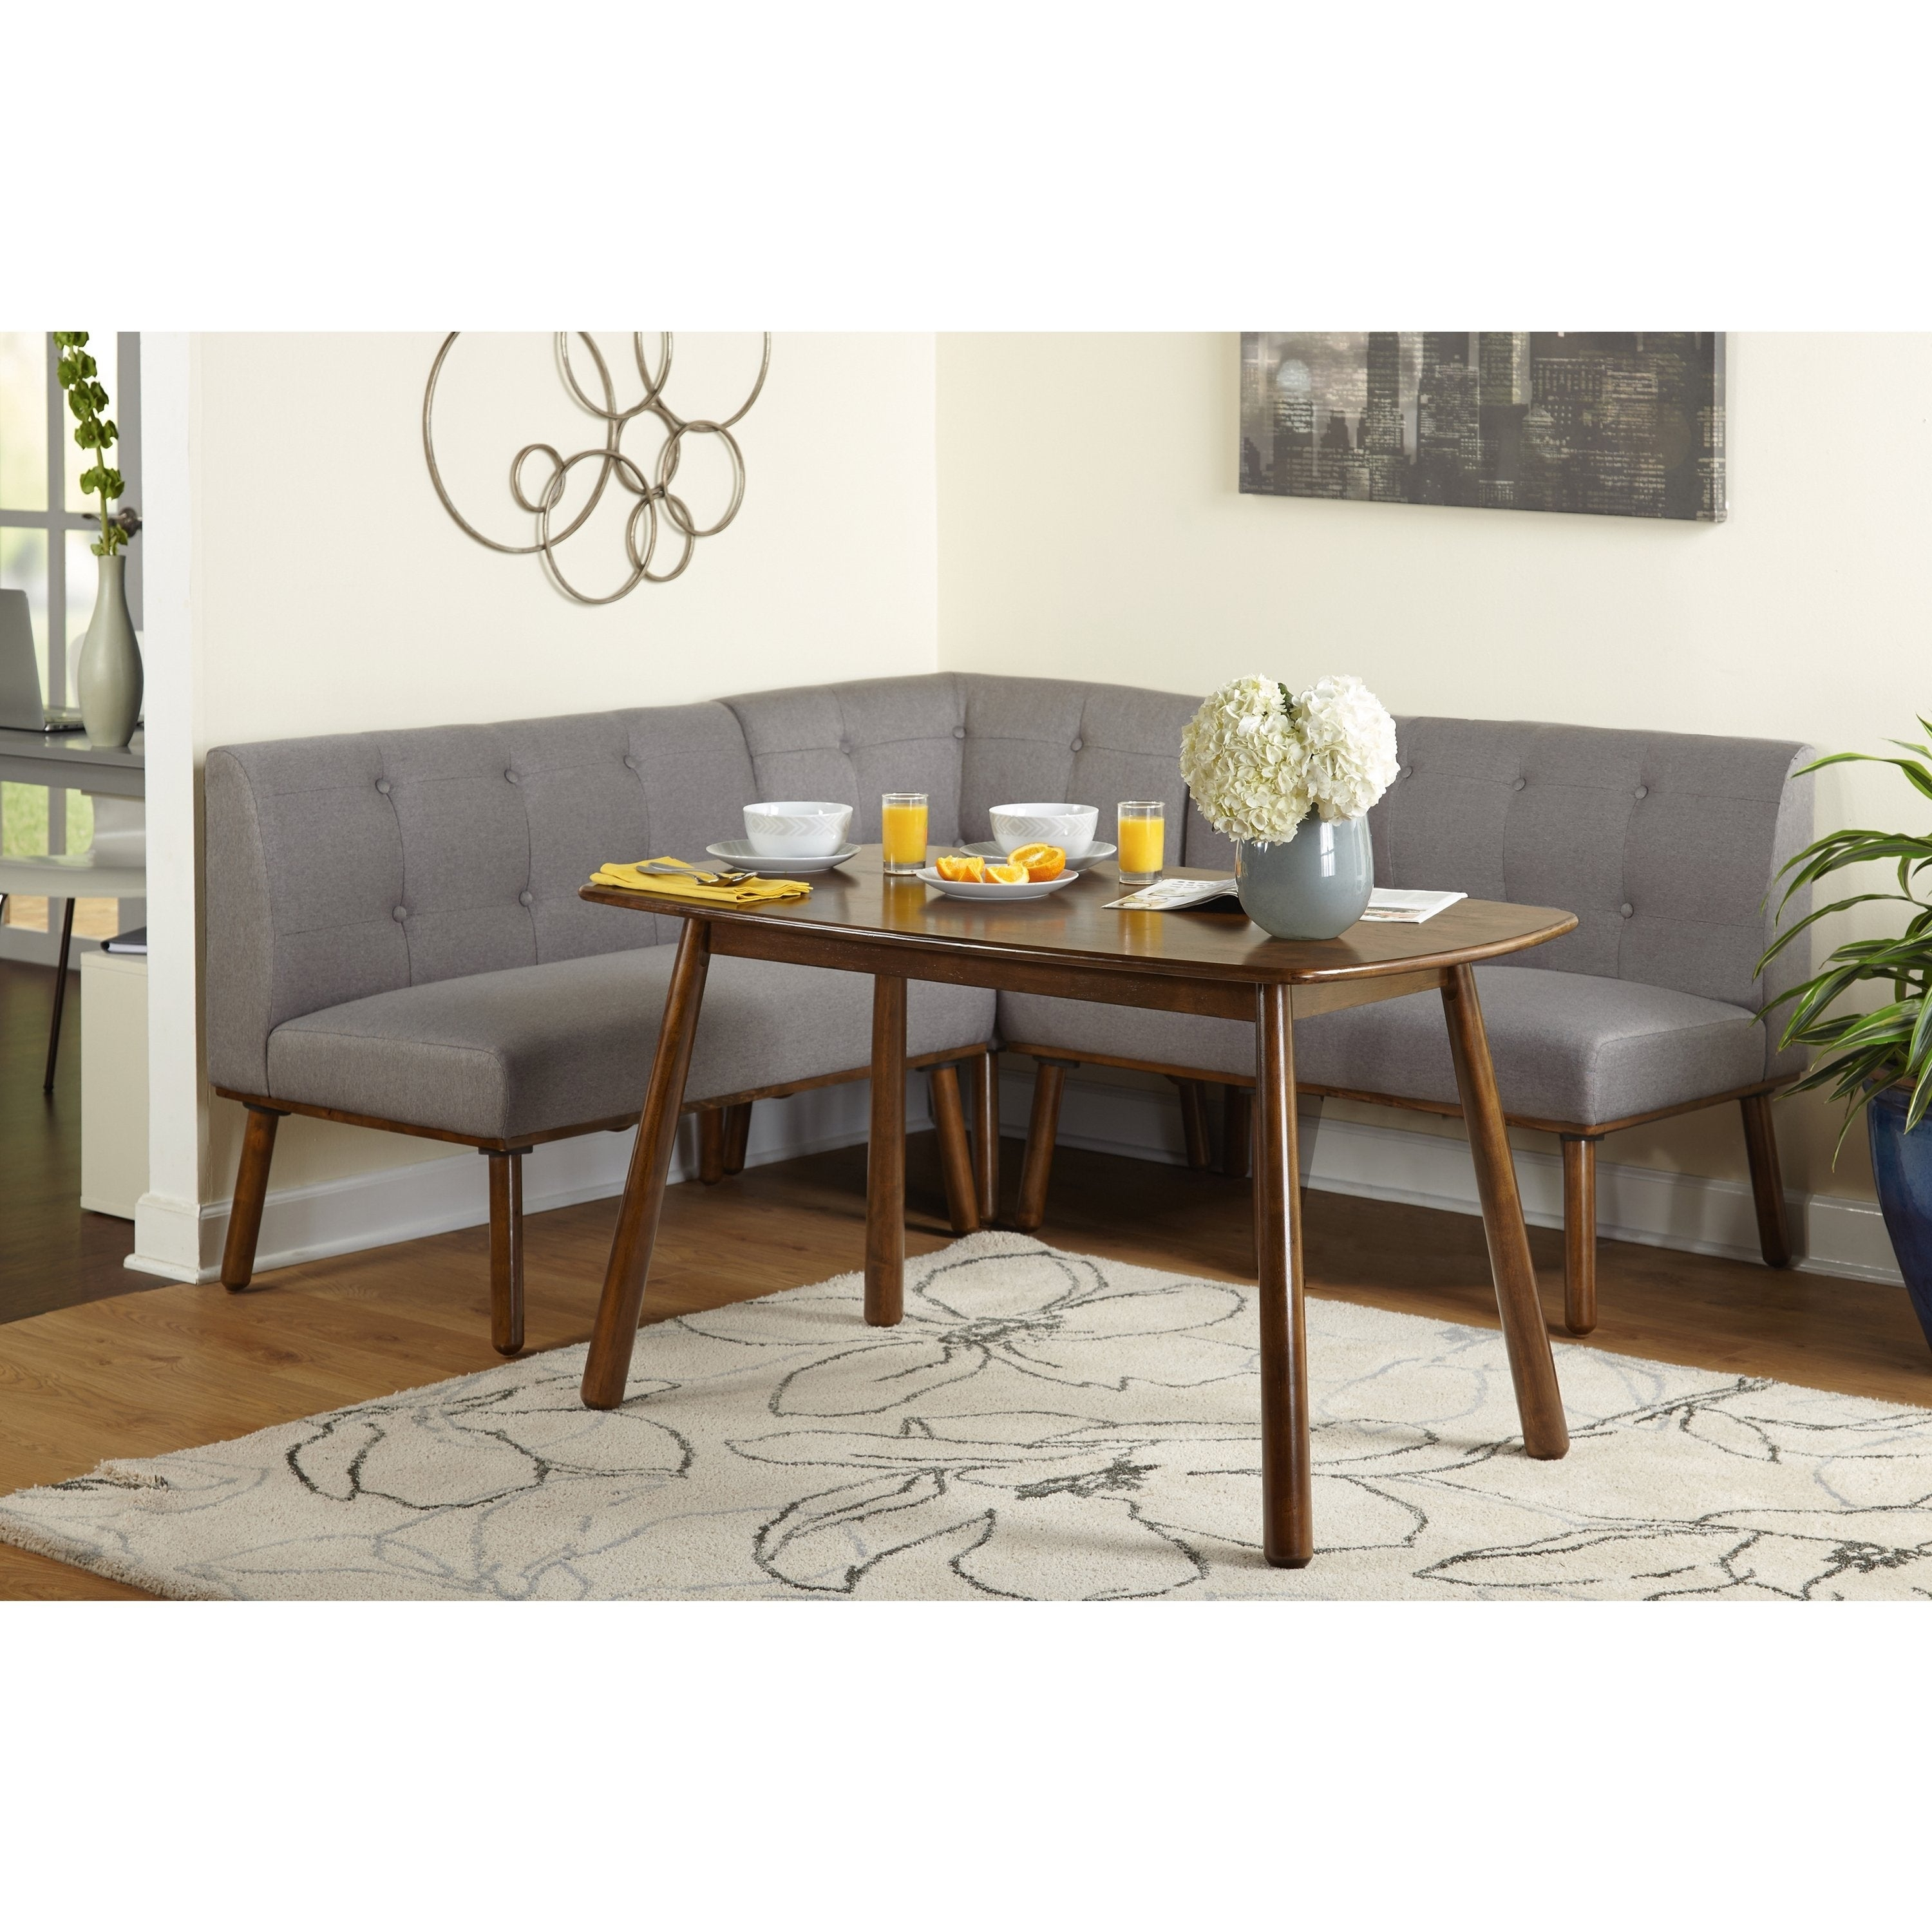 Inspiration about 3 Piece Breakfast Nook Dinning Set With Well Known Buy Breakfast Nook, 3 Piece Sets Kitchen & Dining Room Sets Online (#17 of 20)